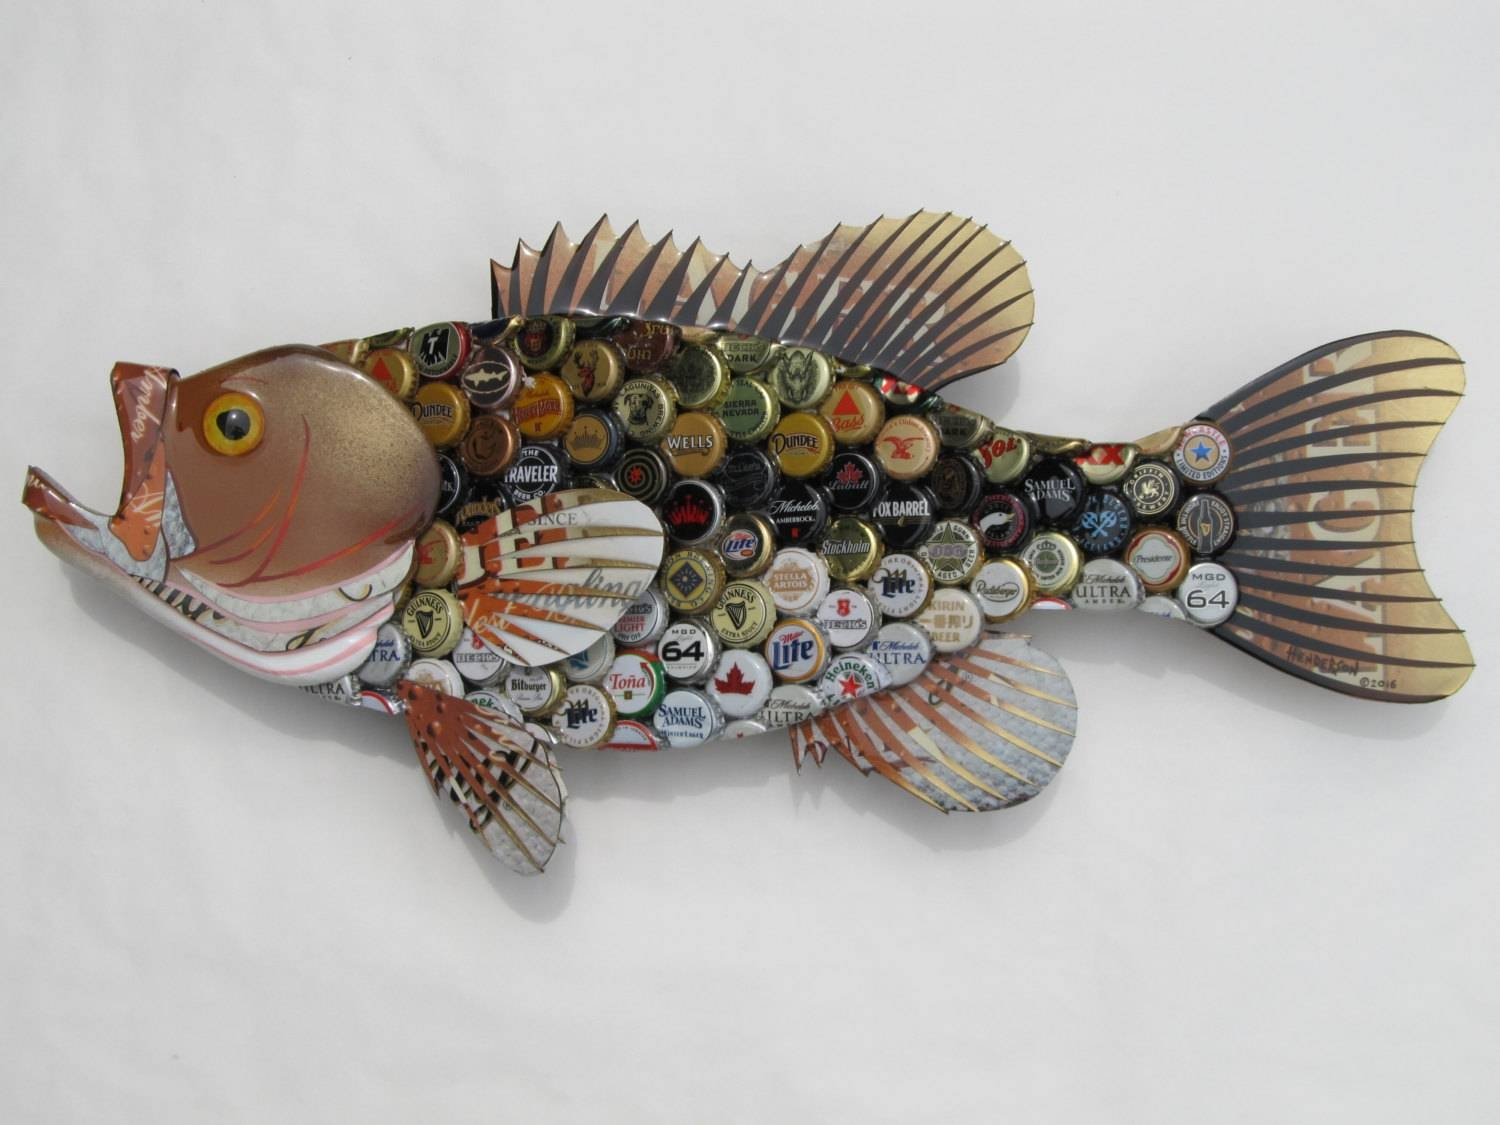 Bottlecap Fish Metal Wall Art Large Mouth Bass With Regard To Most Recent Fish Metal Wall Art (View 4 of 20)